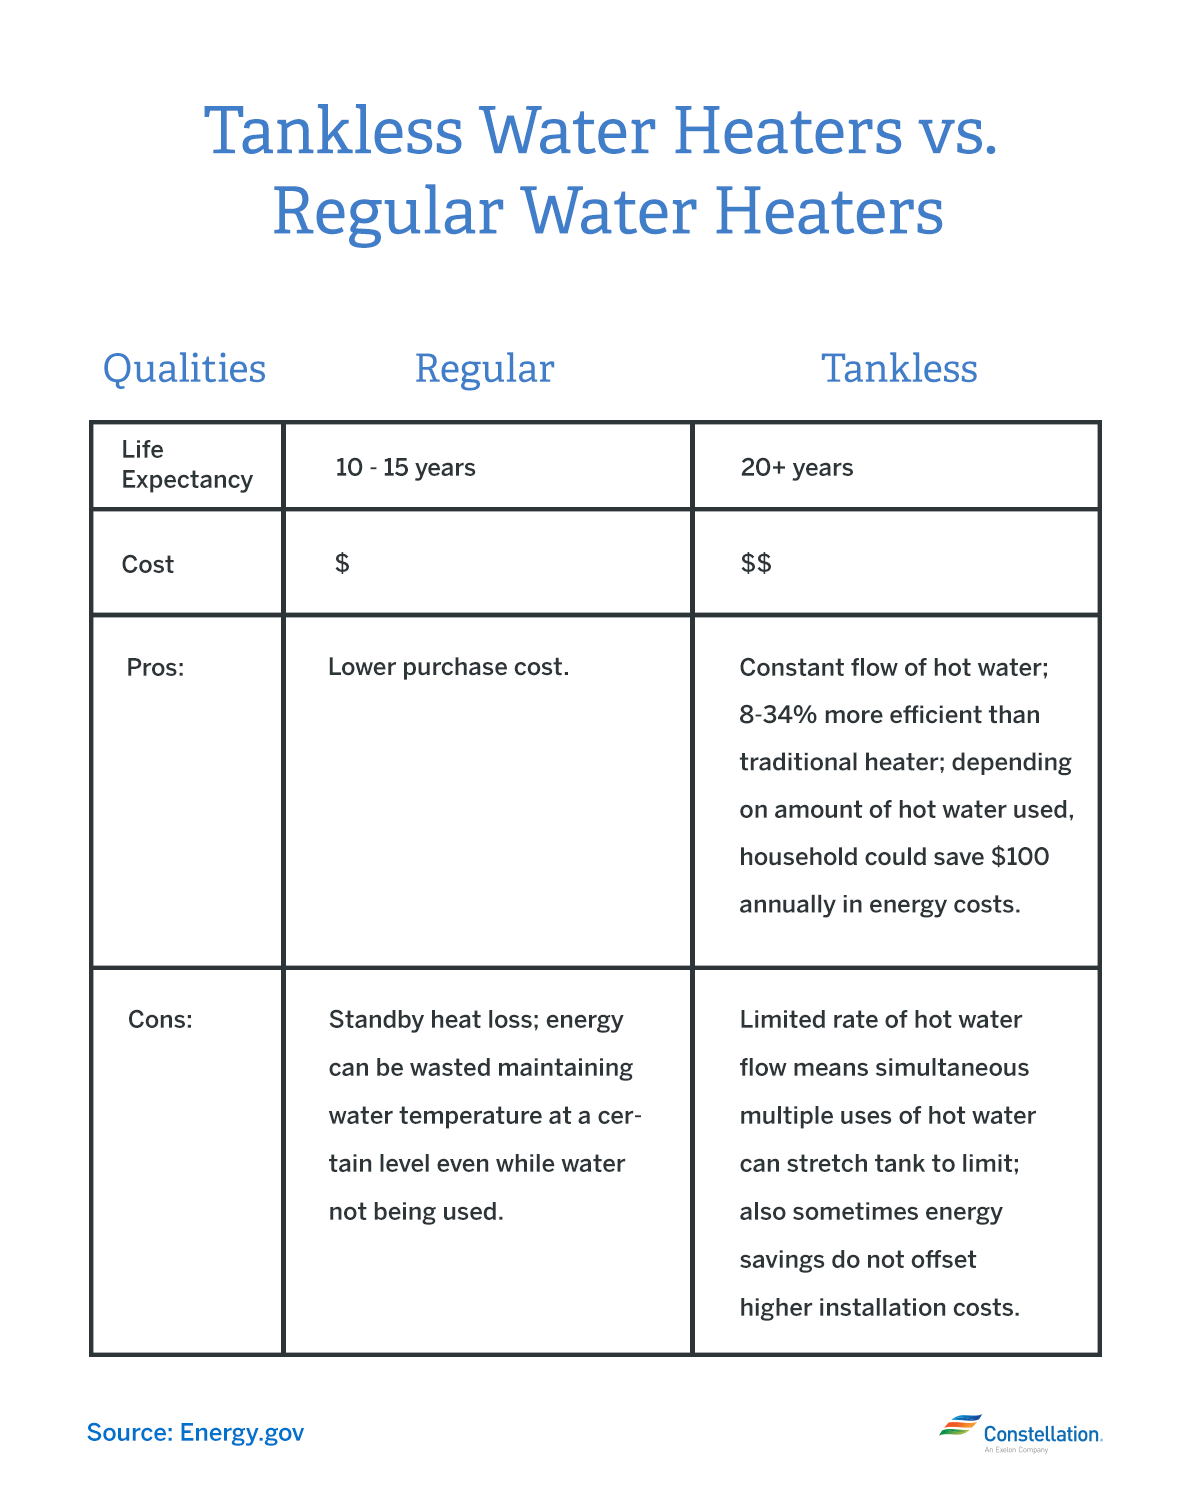 Tankless Water Heaters Vs Regular